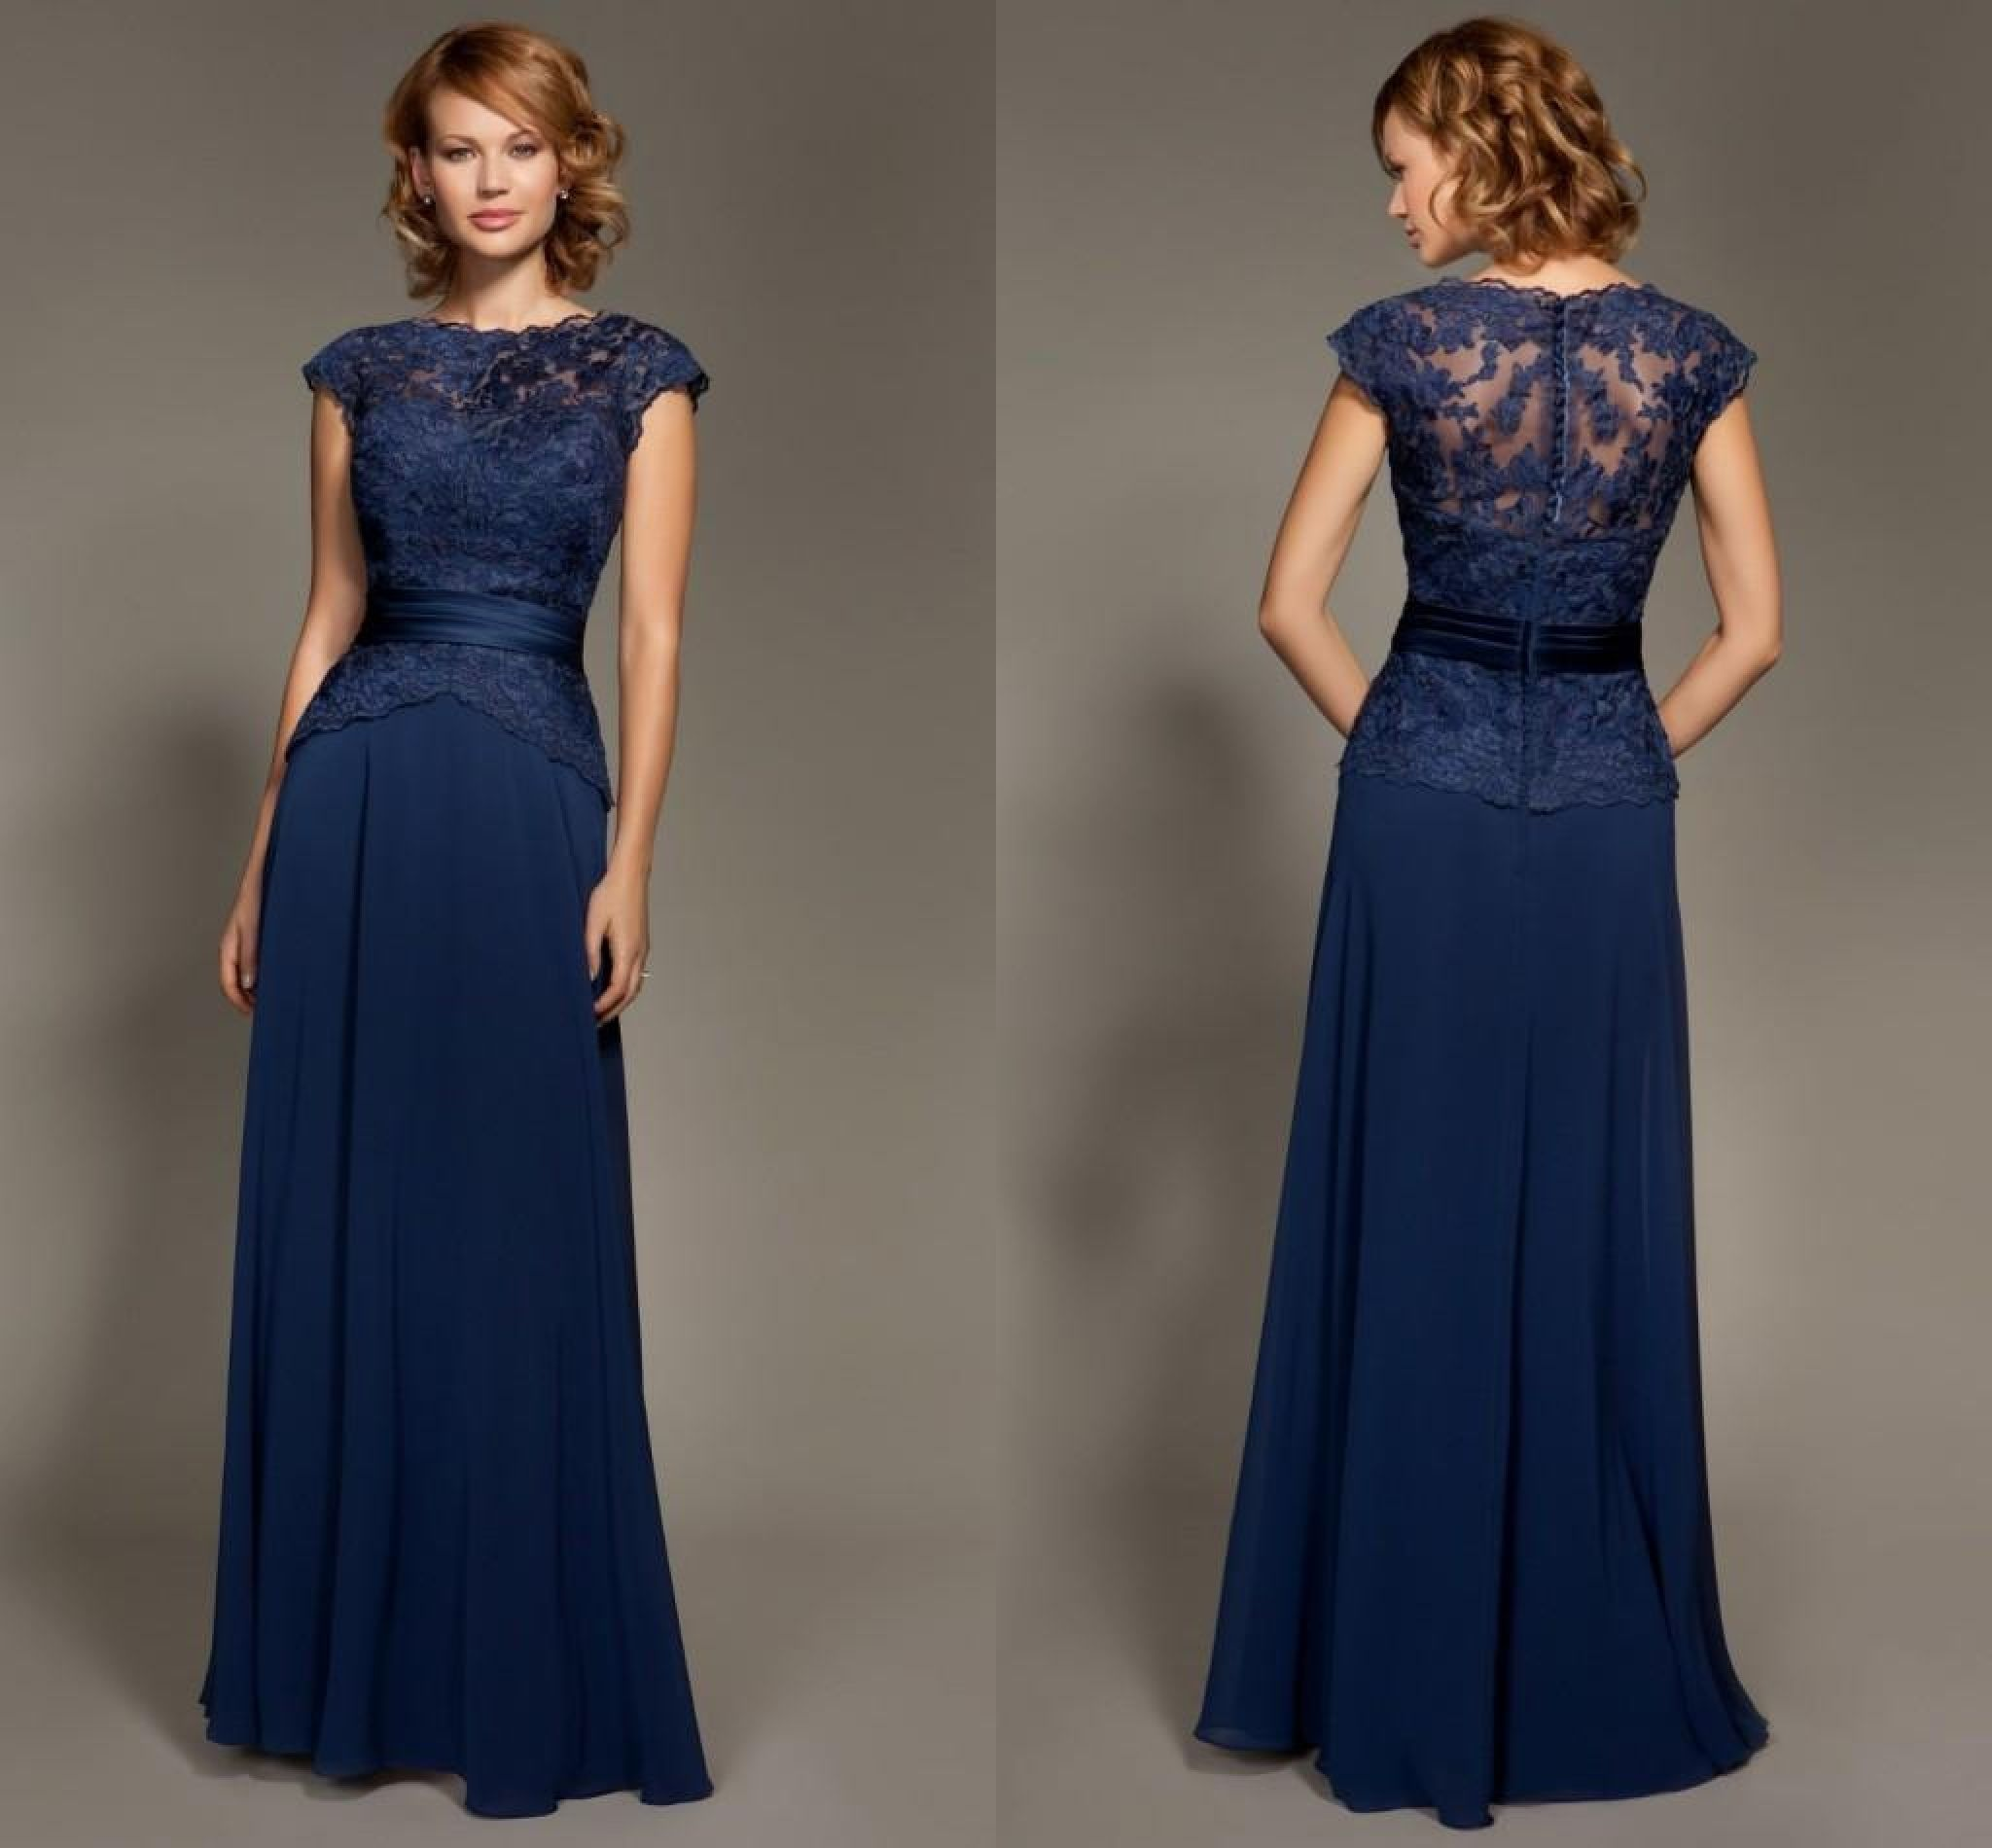 Navy blue dress for wedding dress for country wedding guest check